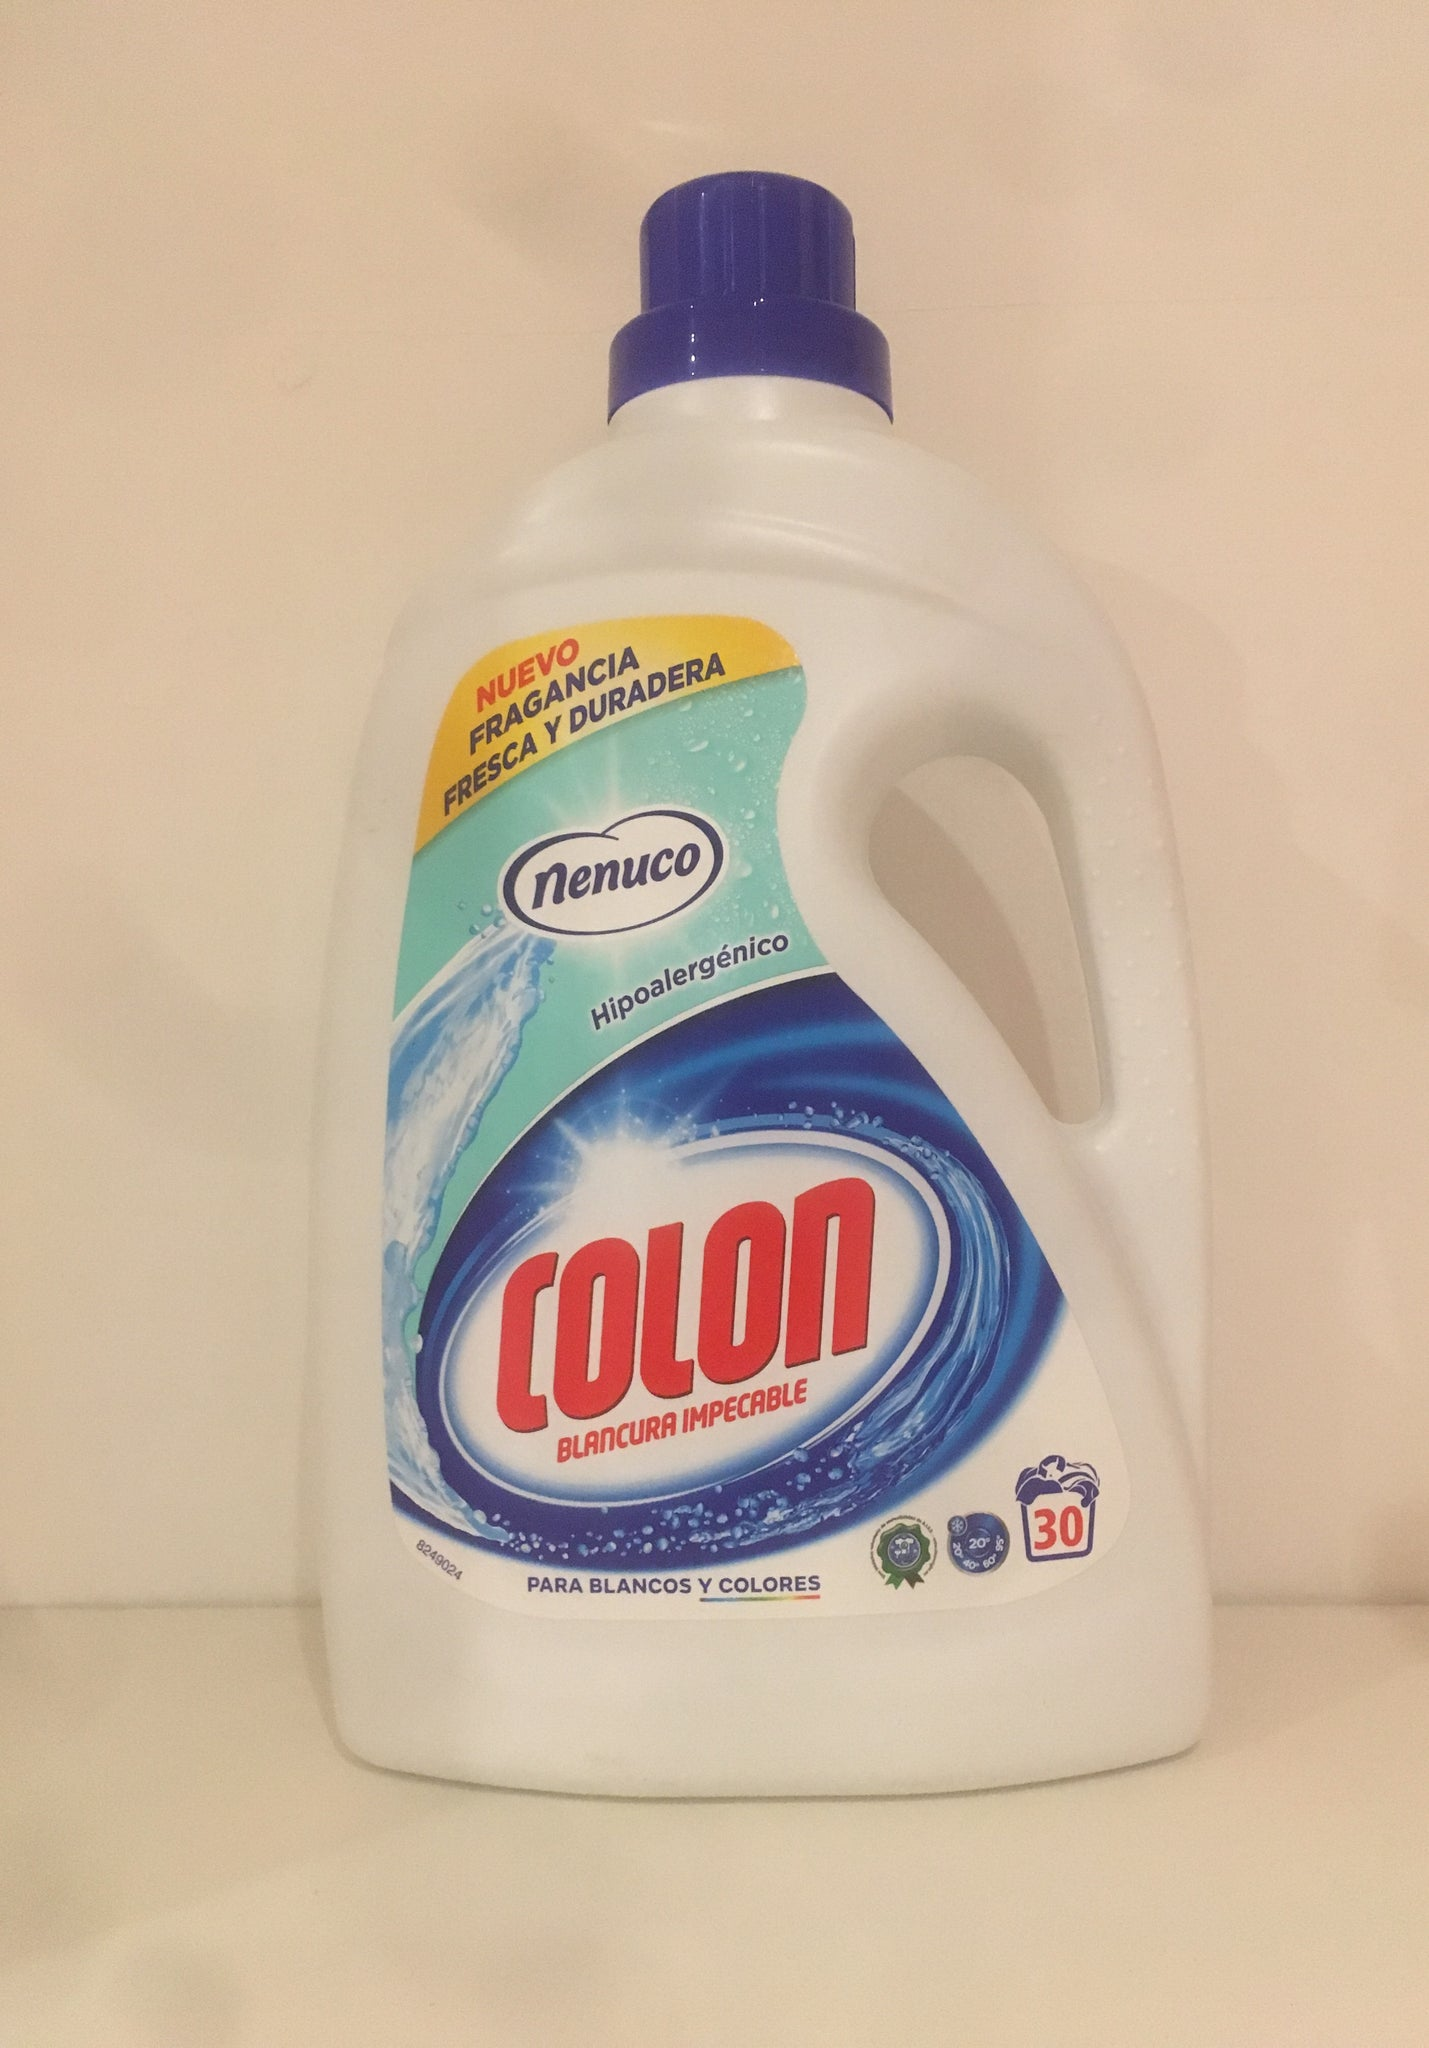 Nenuco Colon Washing Liquid 1.8L 30 Wash